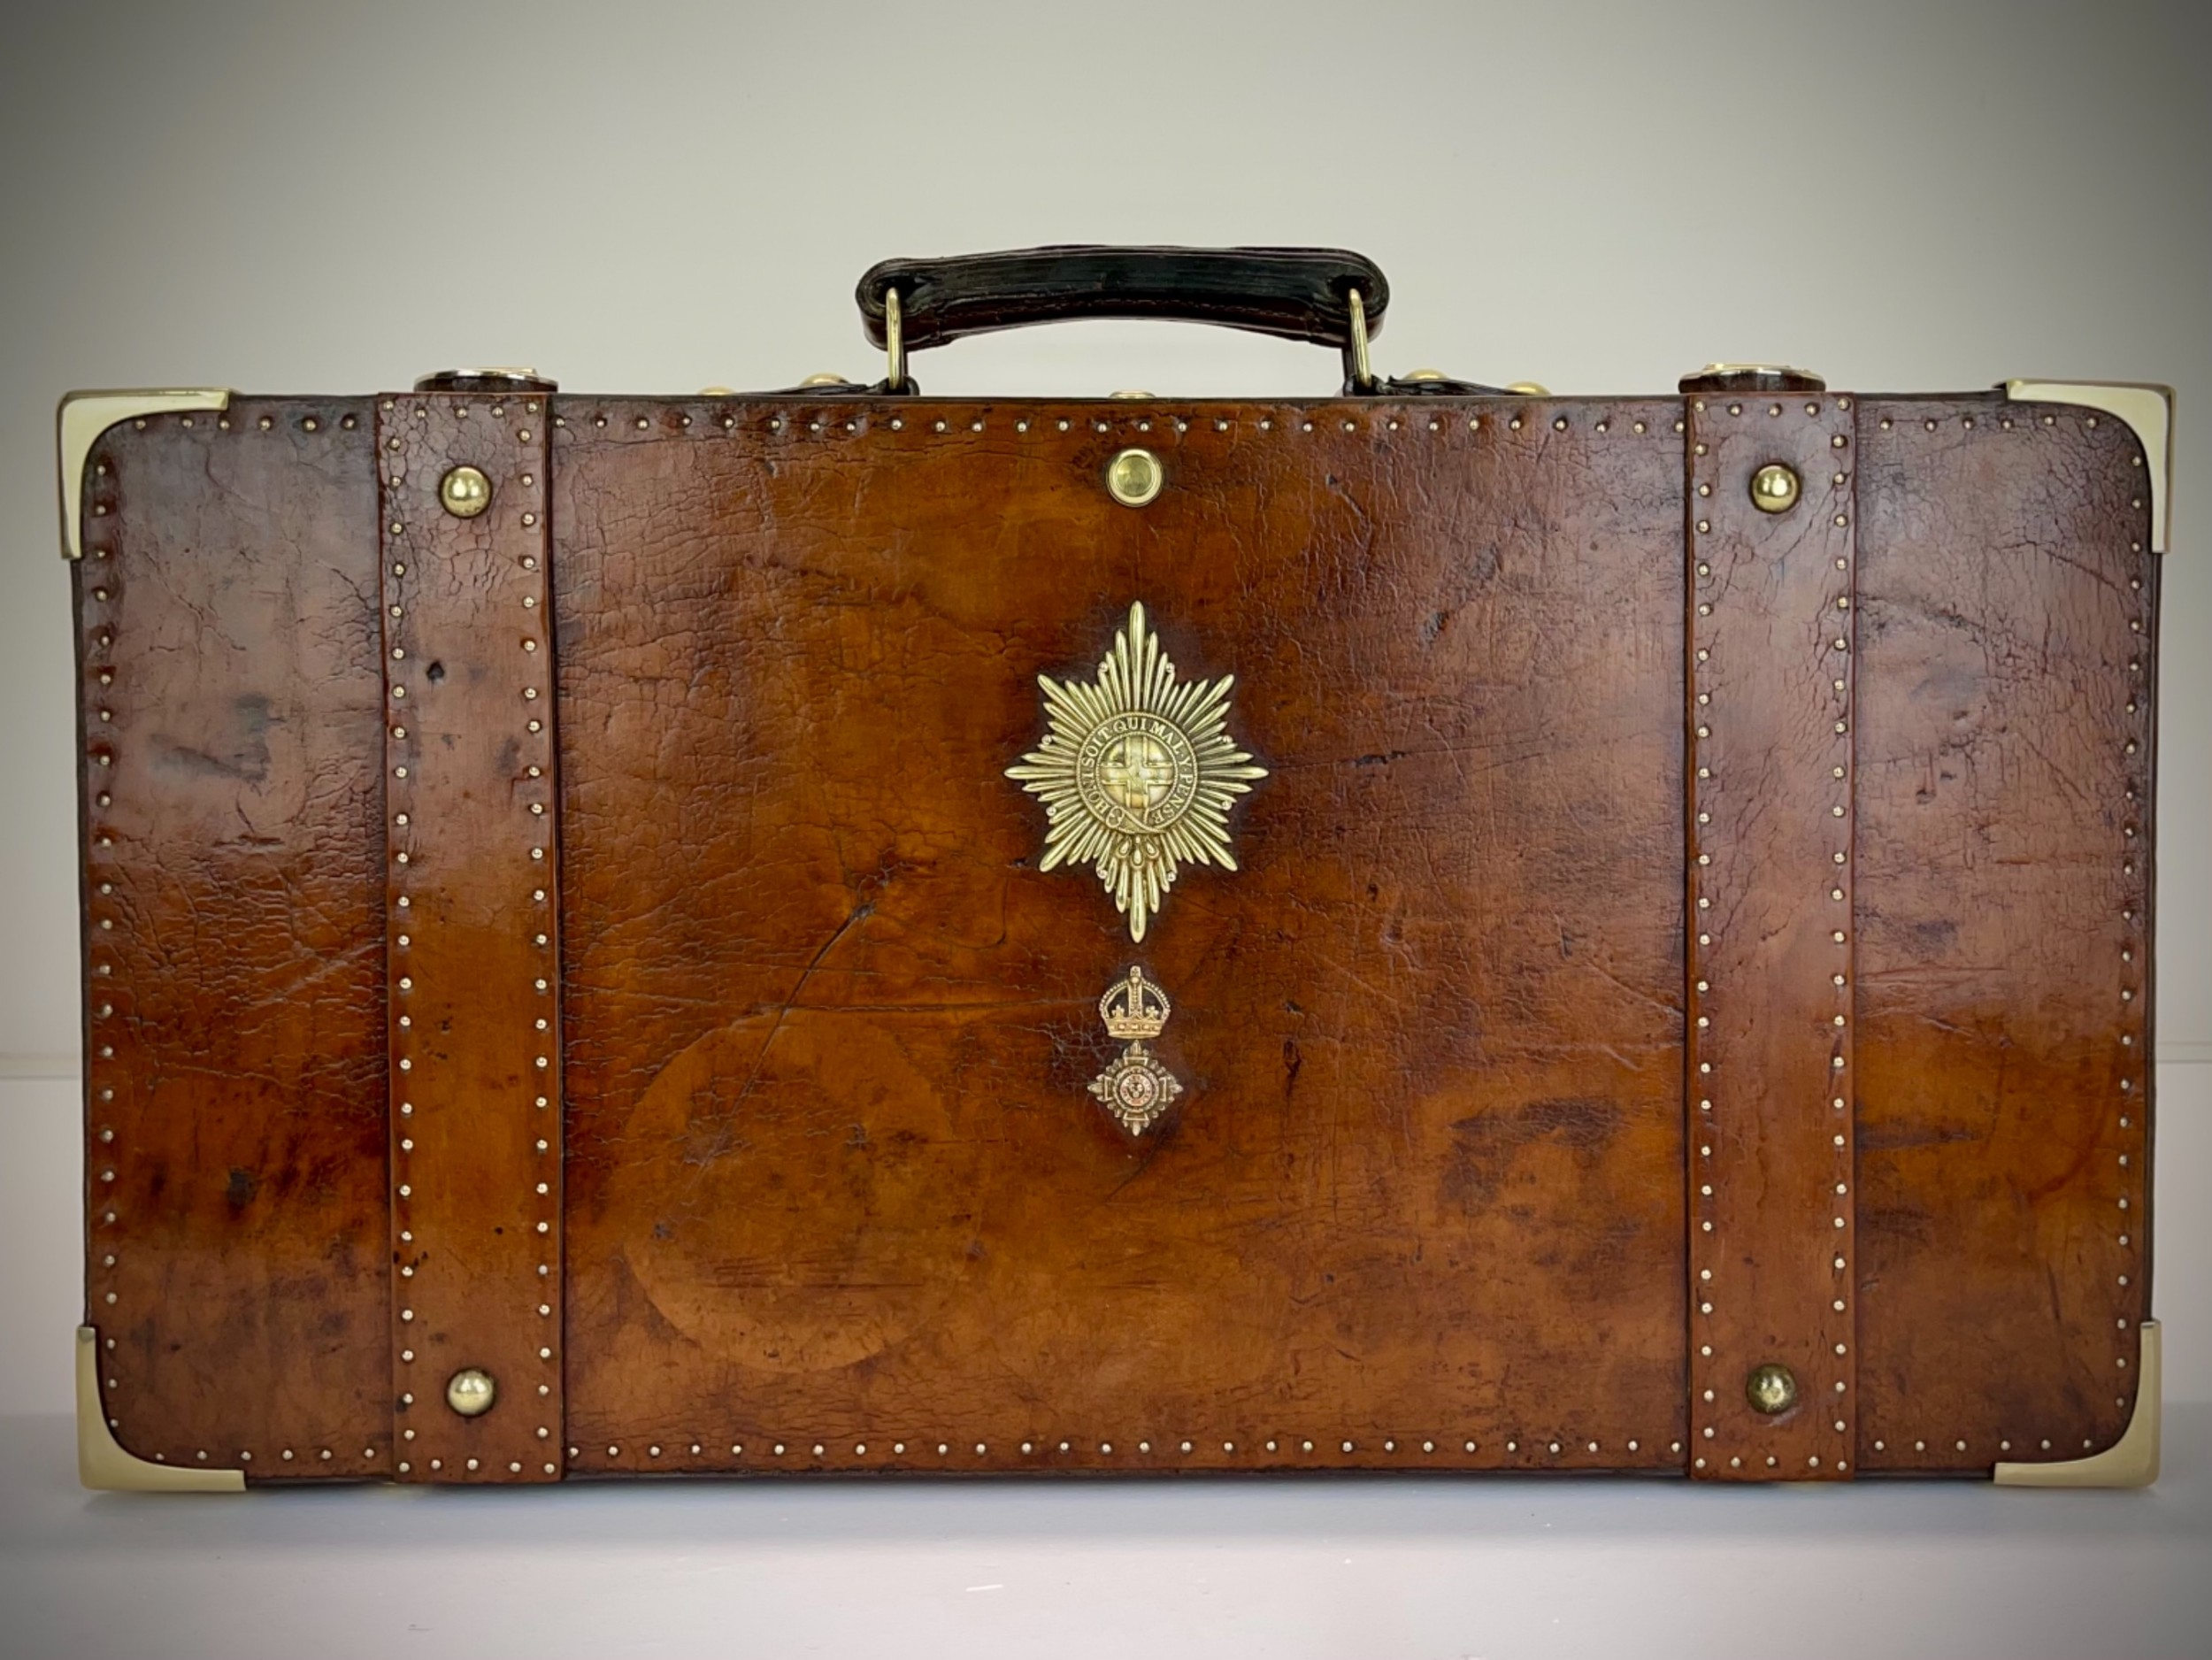 vintage dispatch case briefcase antique leather military travel luggage